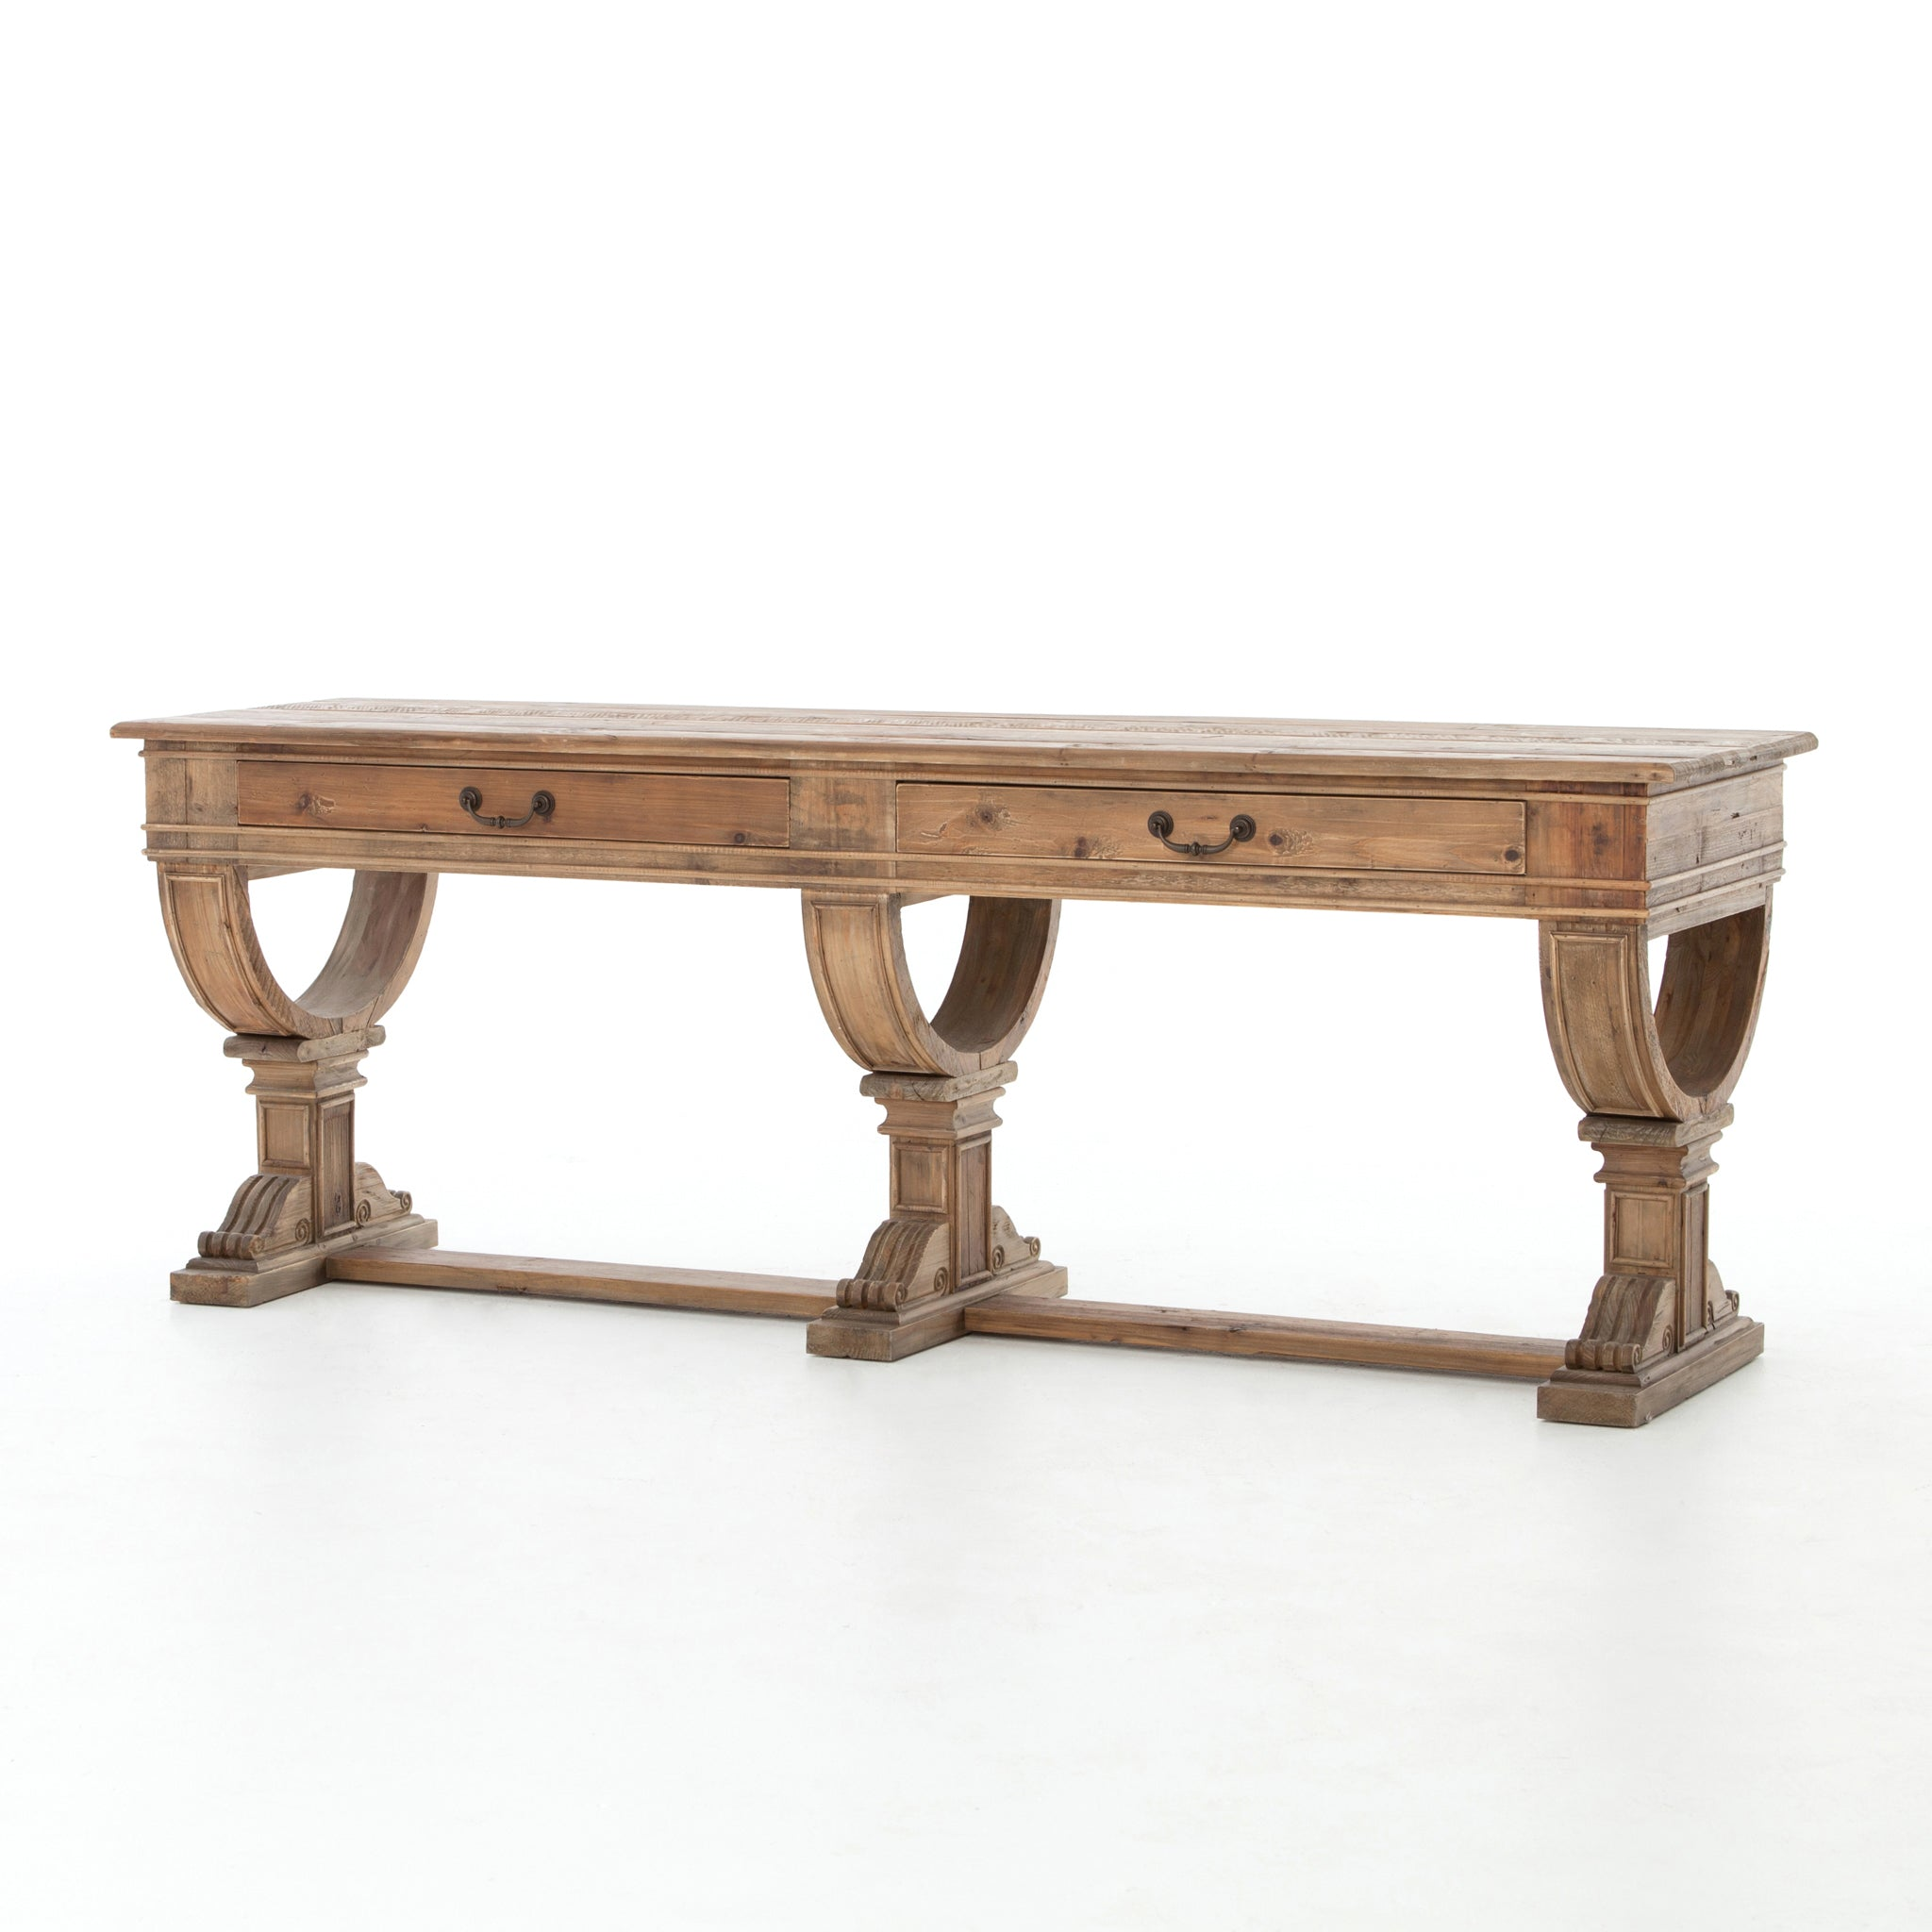 French Style Console Table - Furniture on Main